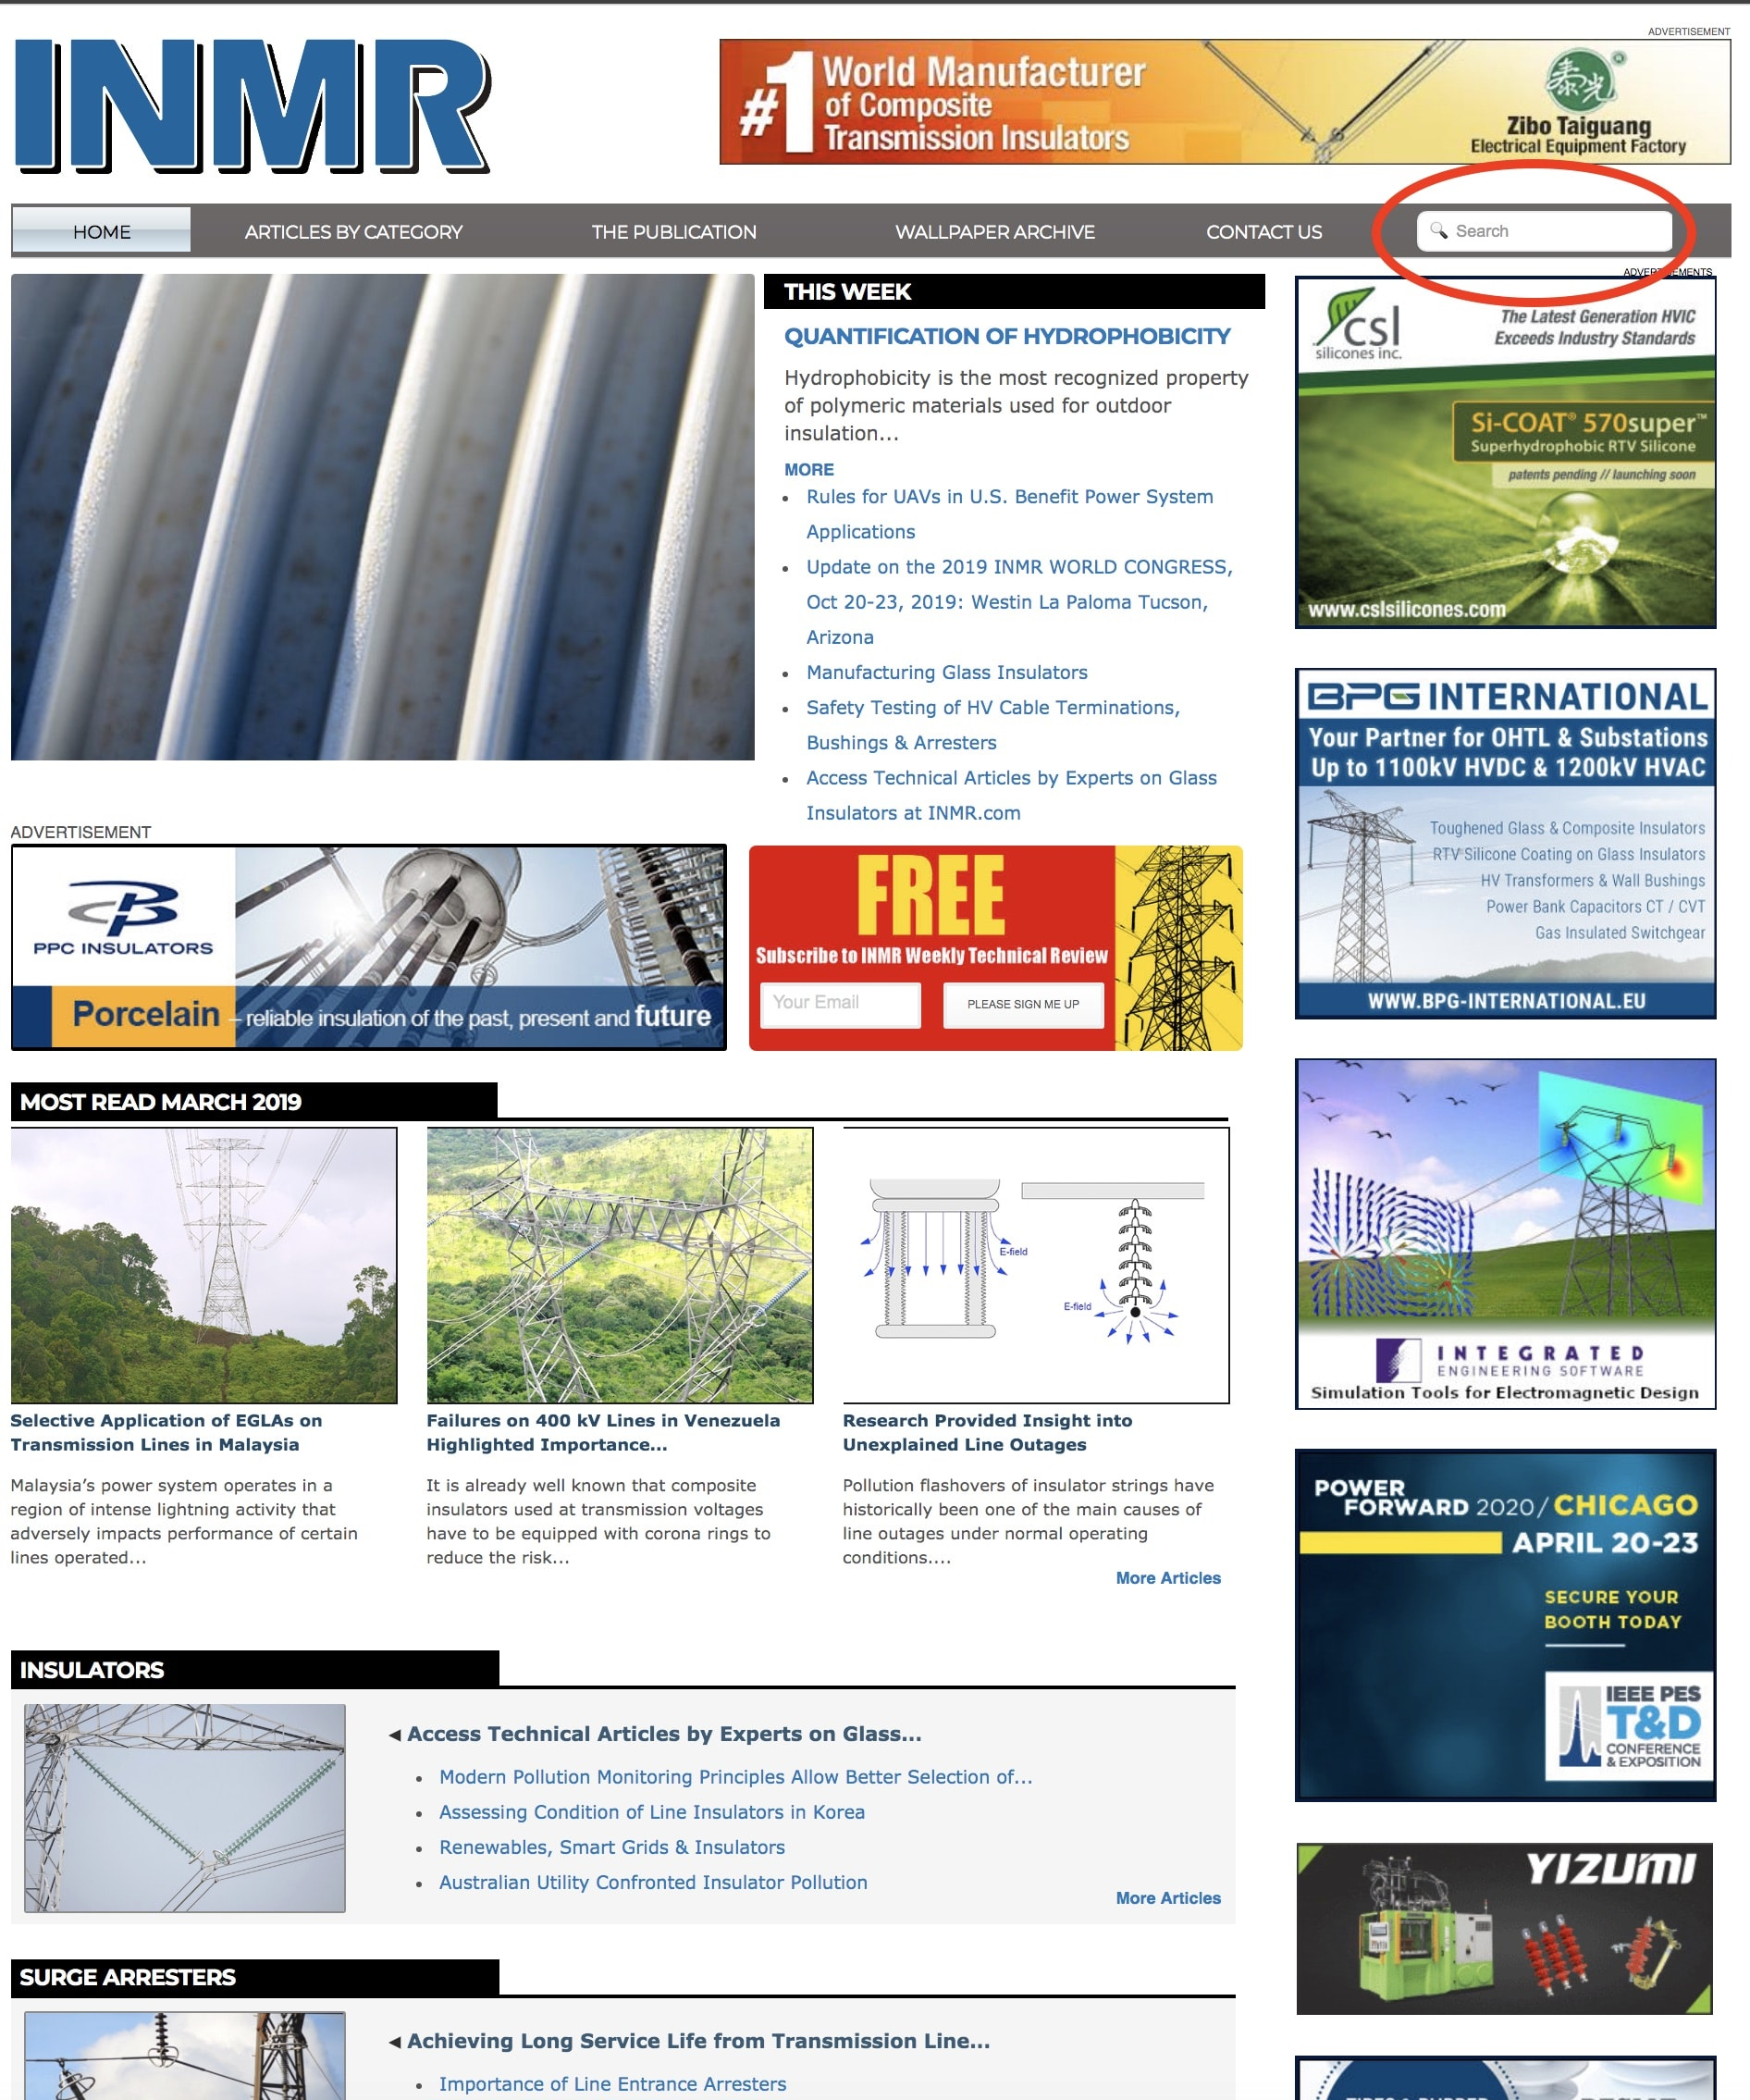 Setp 1 to Search Technical Articles at INMR.com technical articles Access Technical Articles by Experts on Surge Arresters Access Technical Articles by Experts on Laboratory Testing